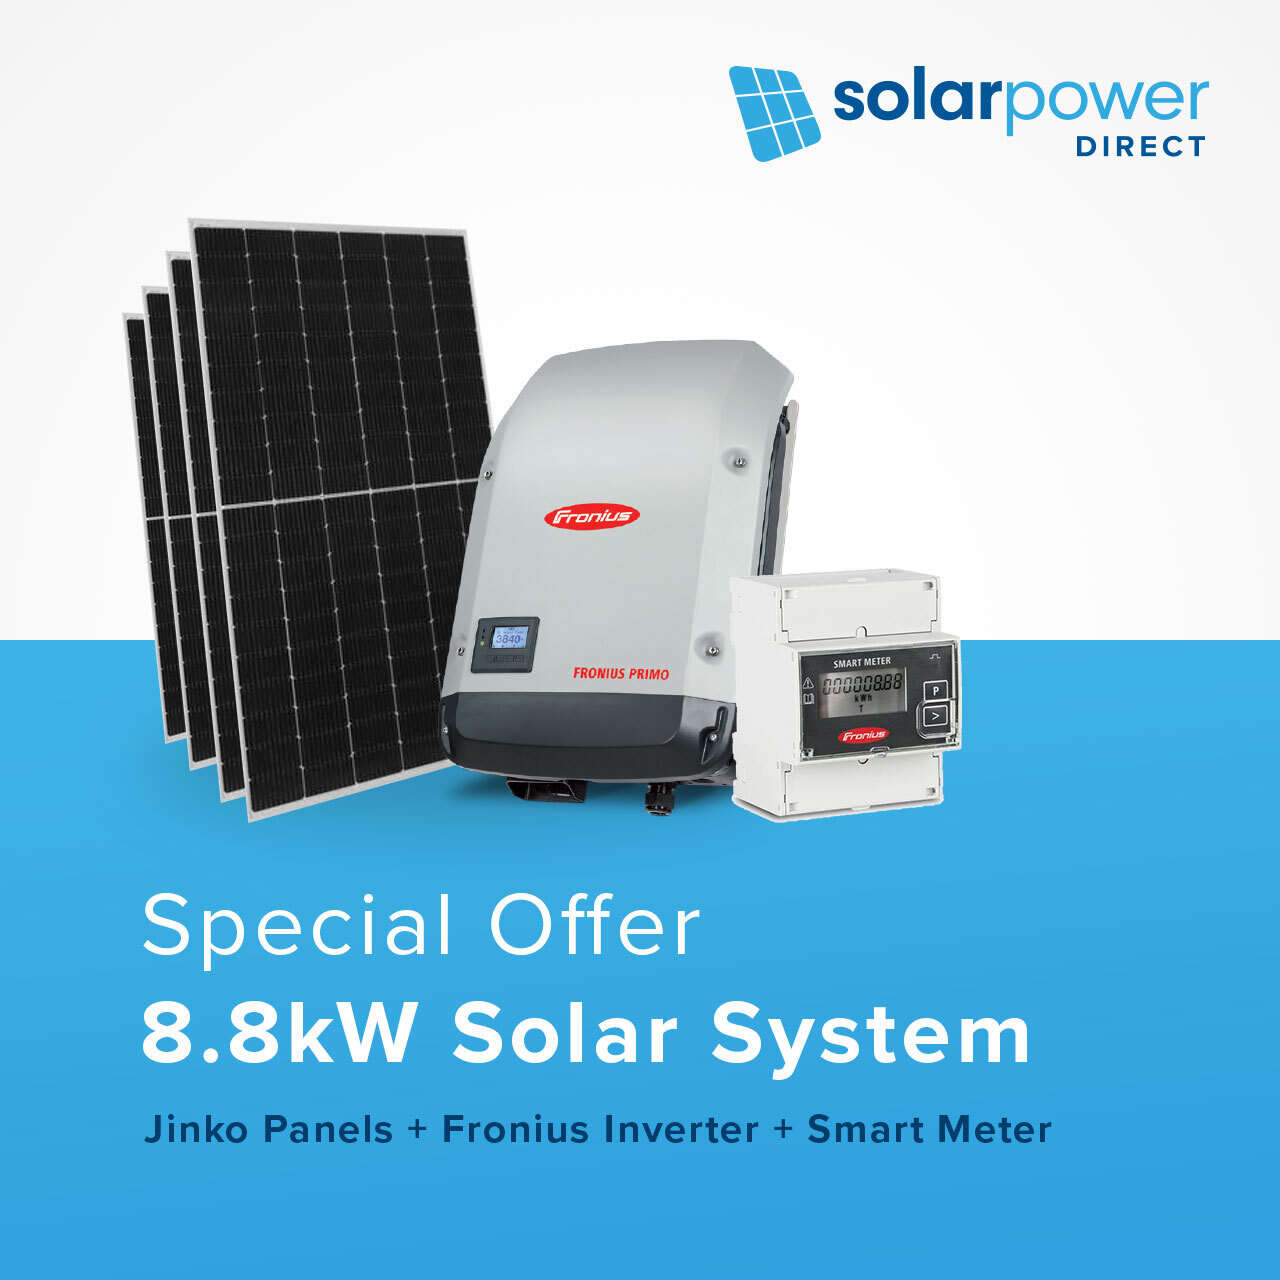 8.8kW Solar System for $5,490